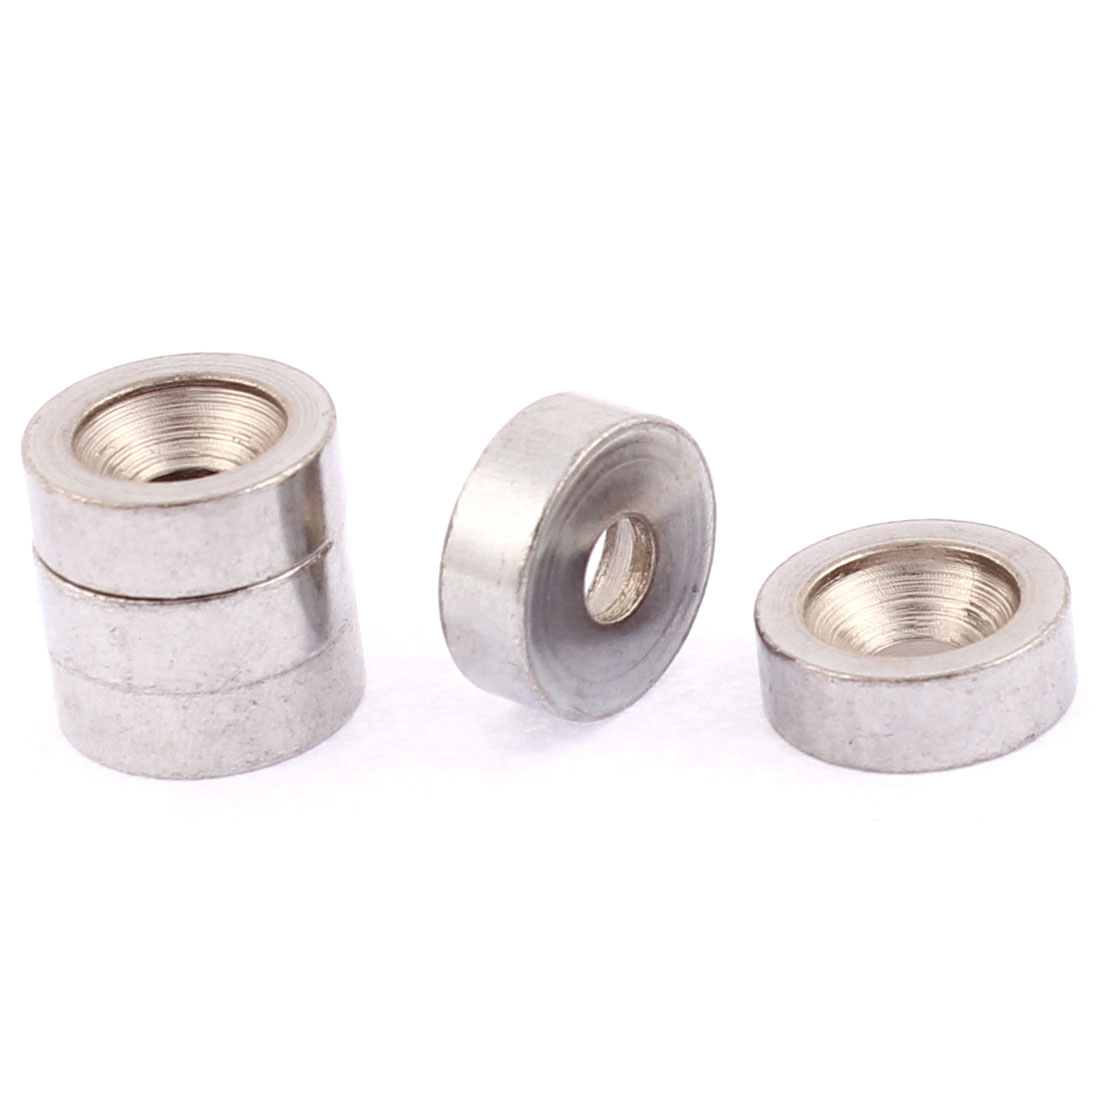 Electric Guitar Bass Neck Joint Bushings Silver Tone 5PCS